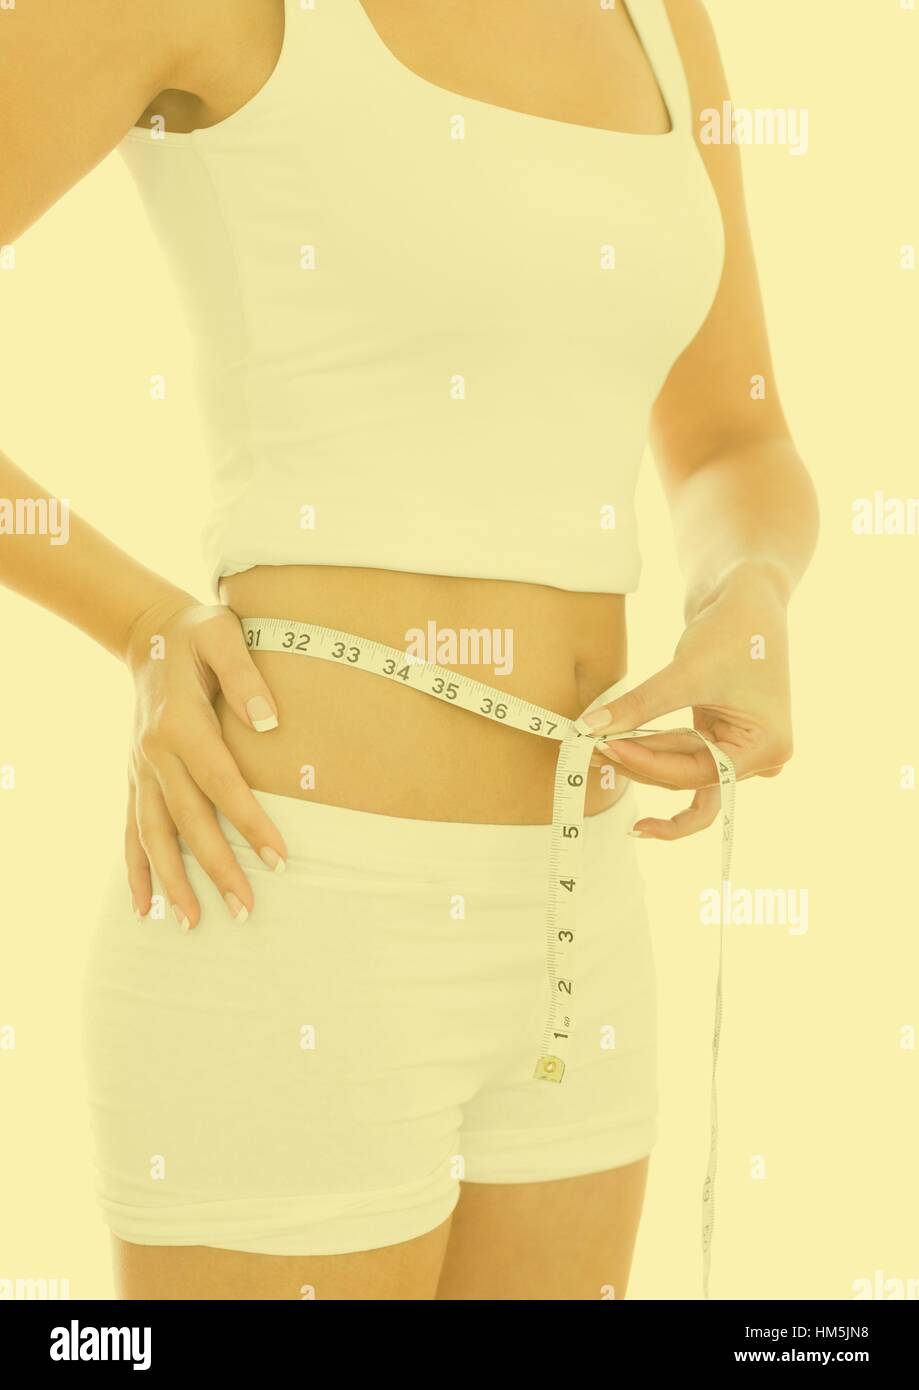 Woman measuring waste with measuring tape - Stock Image